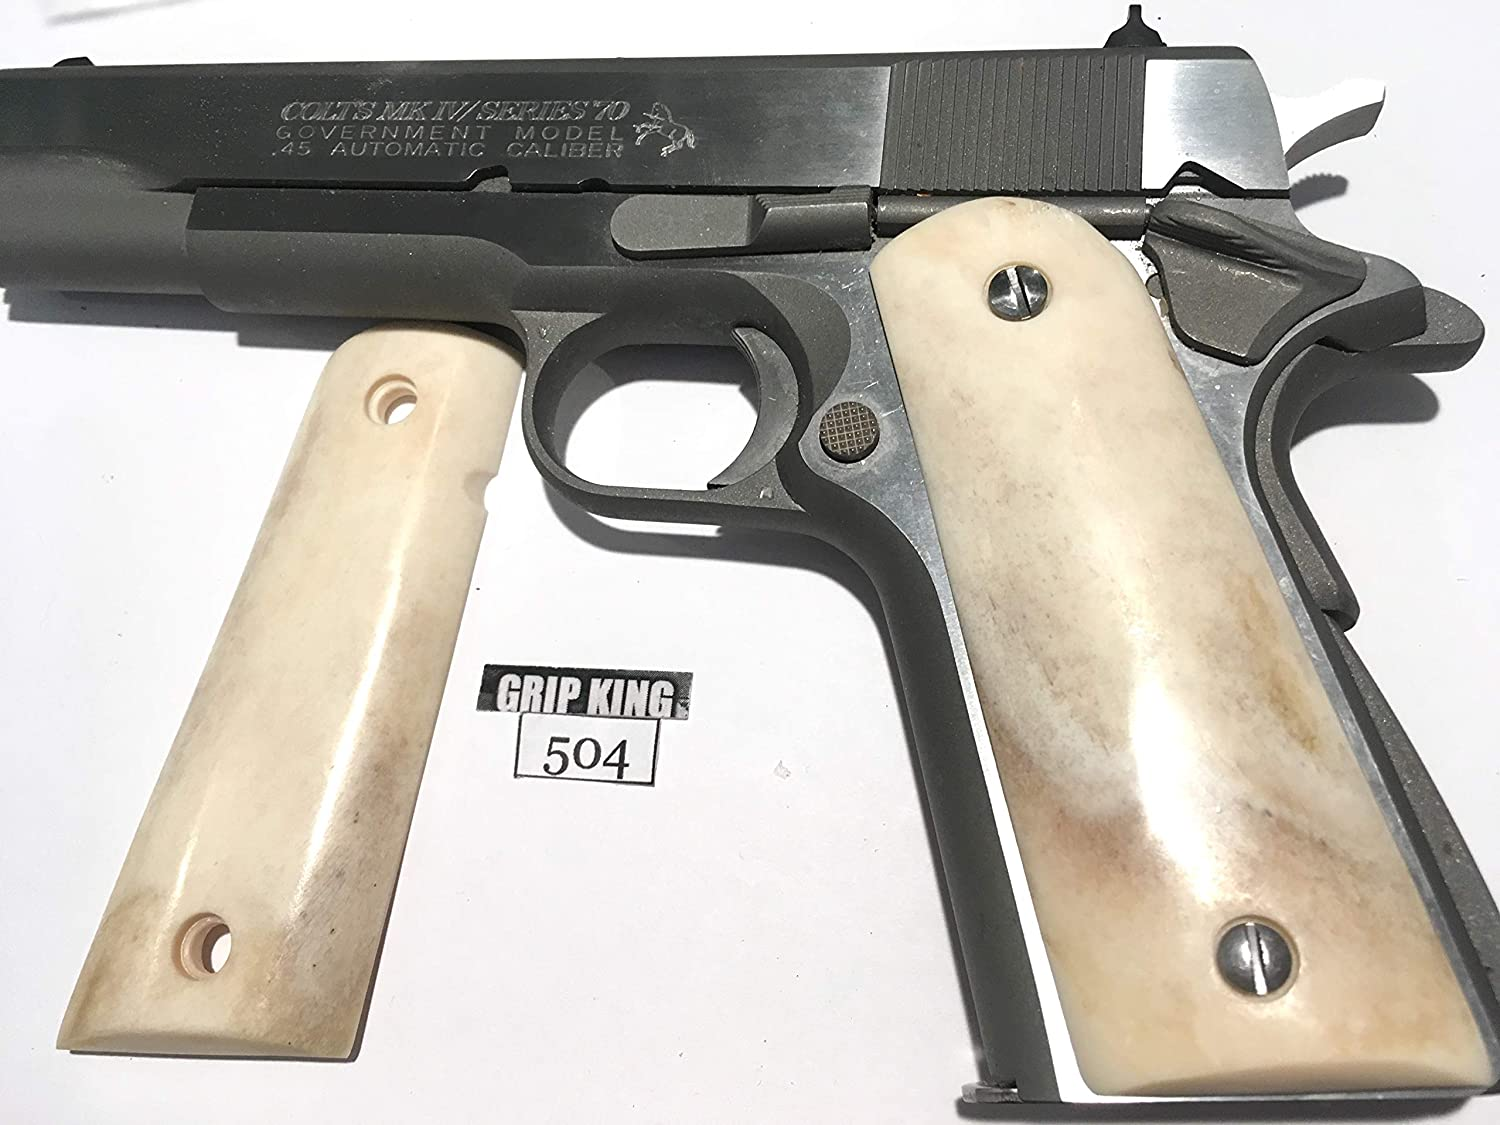 1911 GRIPS GENUINE BUFFALO BONE #504. FITS COLT,SPRINGFIELD,KIMBER,RUGER,TAURUS,SIG,PARA,WILSON.REMINGTON,ITHACA,ACE,S&W,R.I. RANDAL,CLONES. SALE $39.88